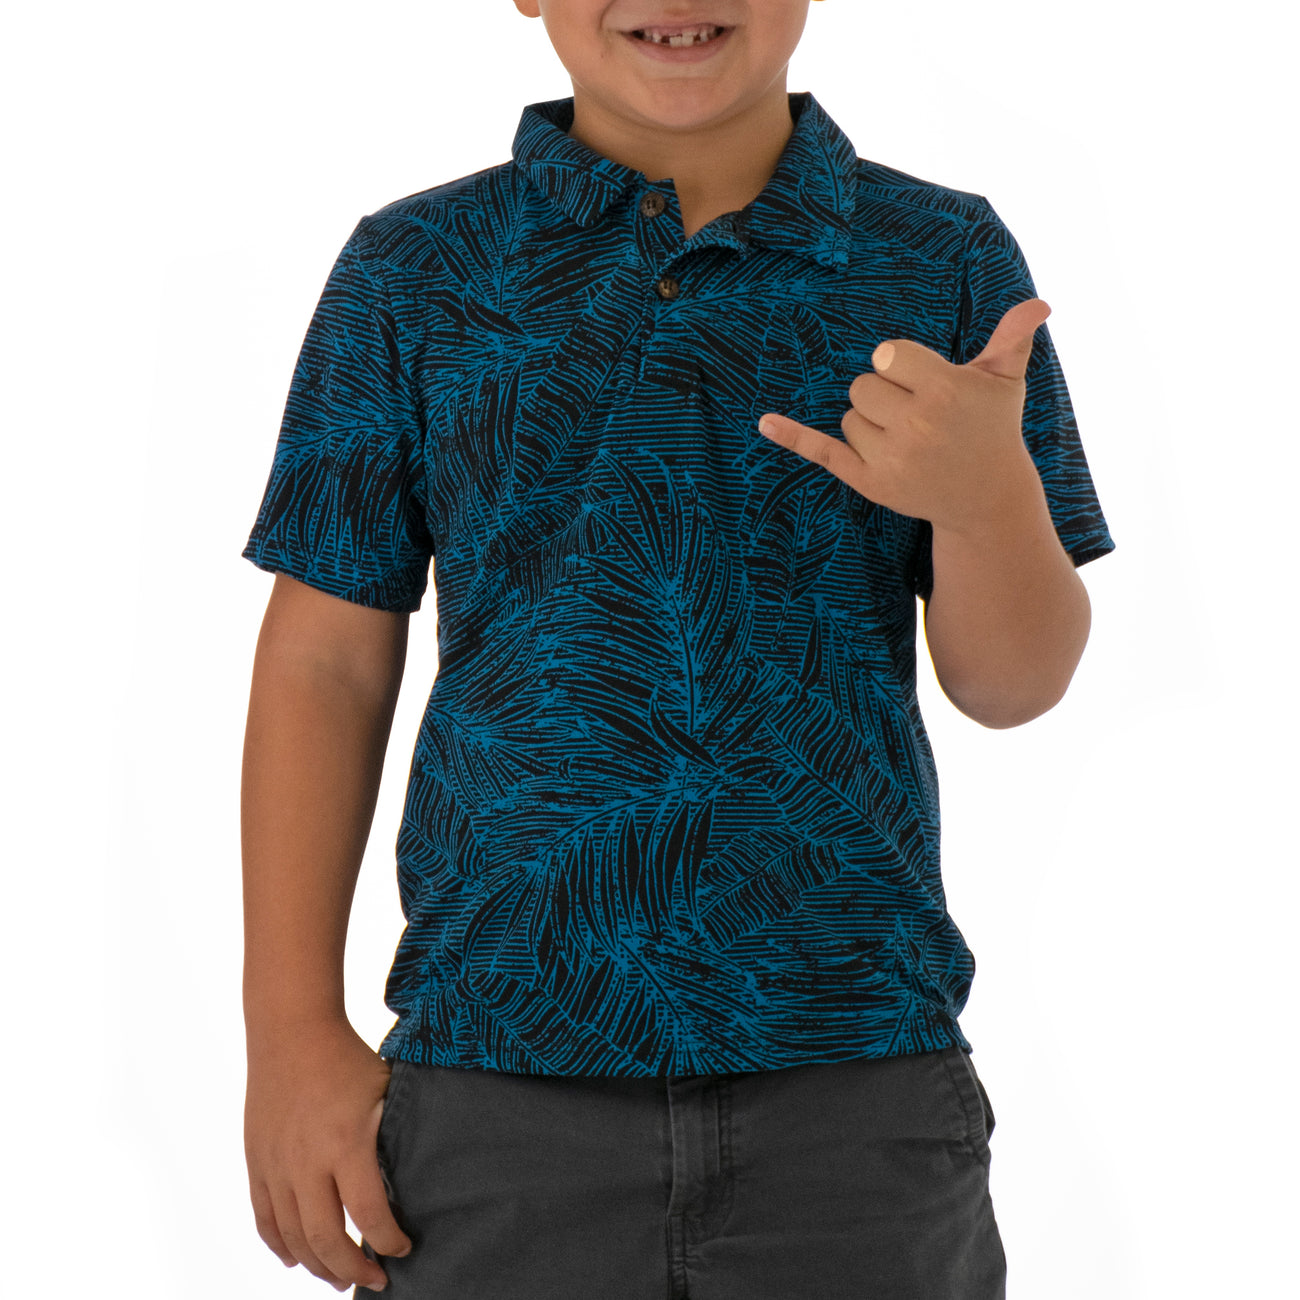 KAMA BOYS KNIT POLO